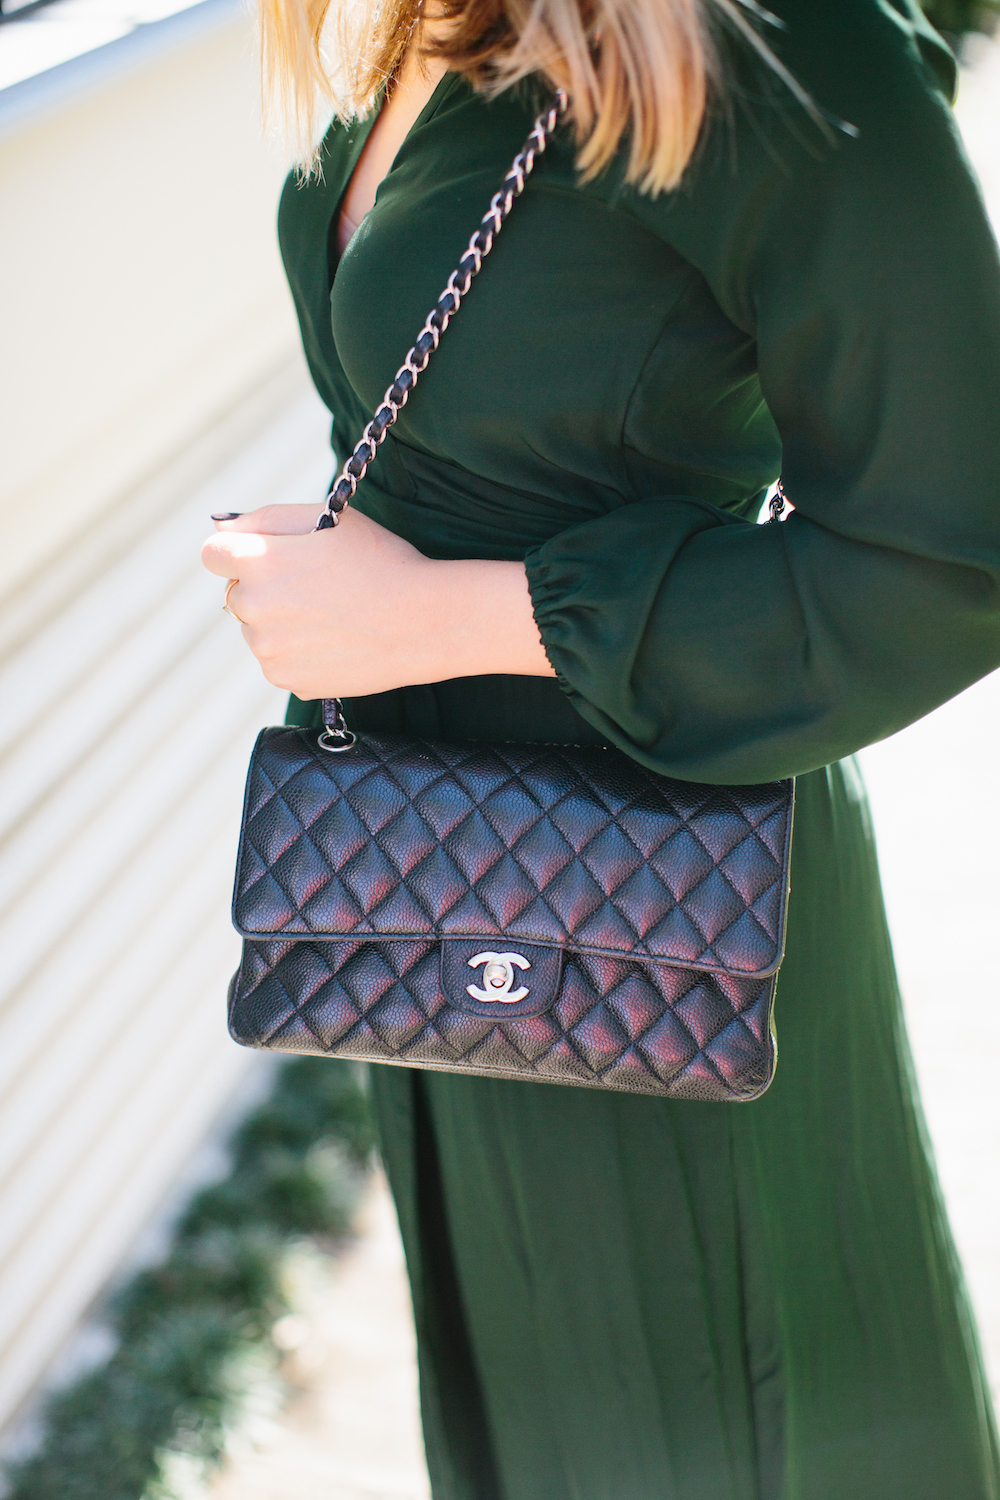 chanel classic 2.55 flap bag with silver hardware. grace atwood, the stripe | shot at 86 cannon in charleston